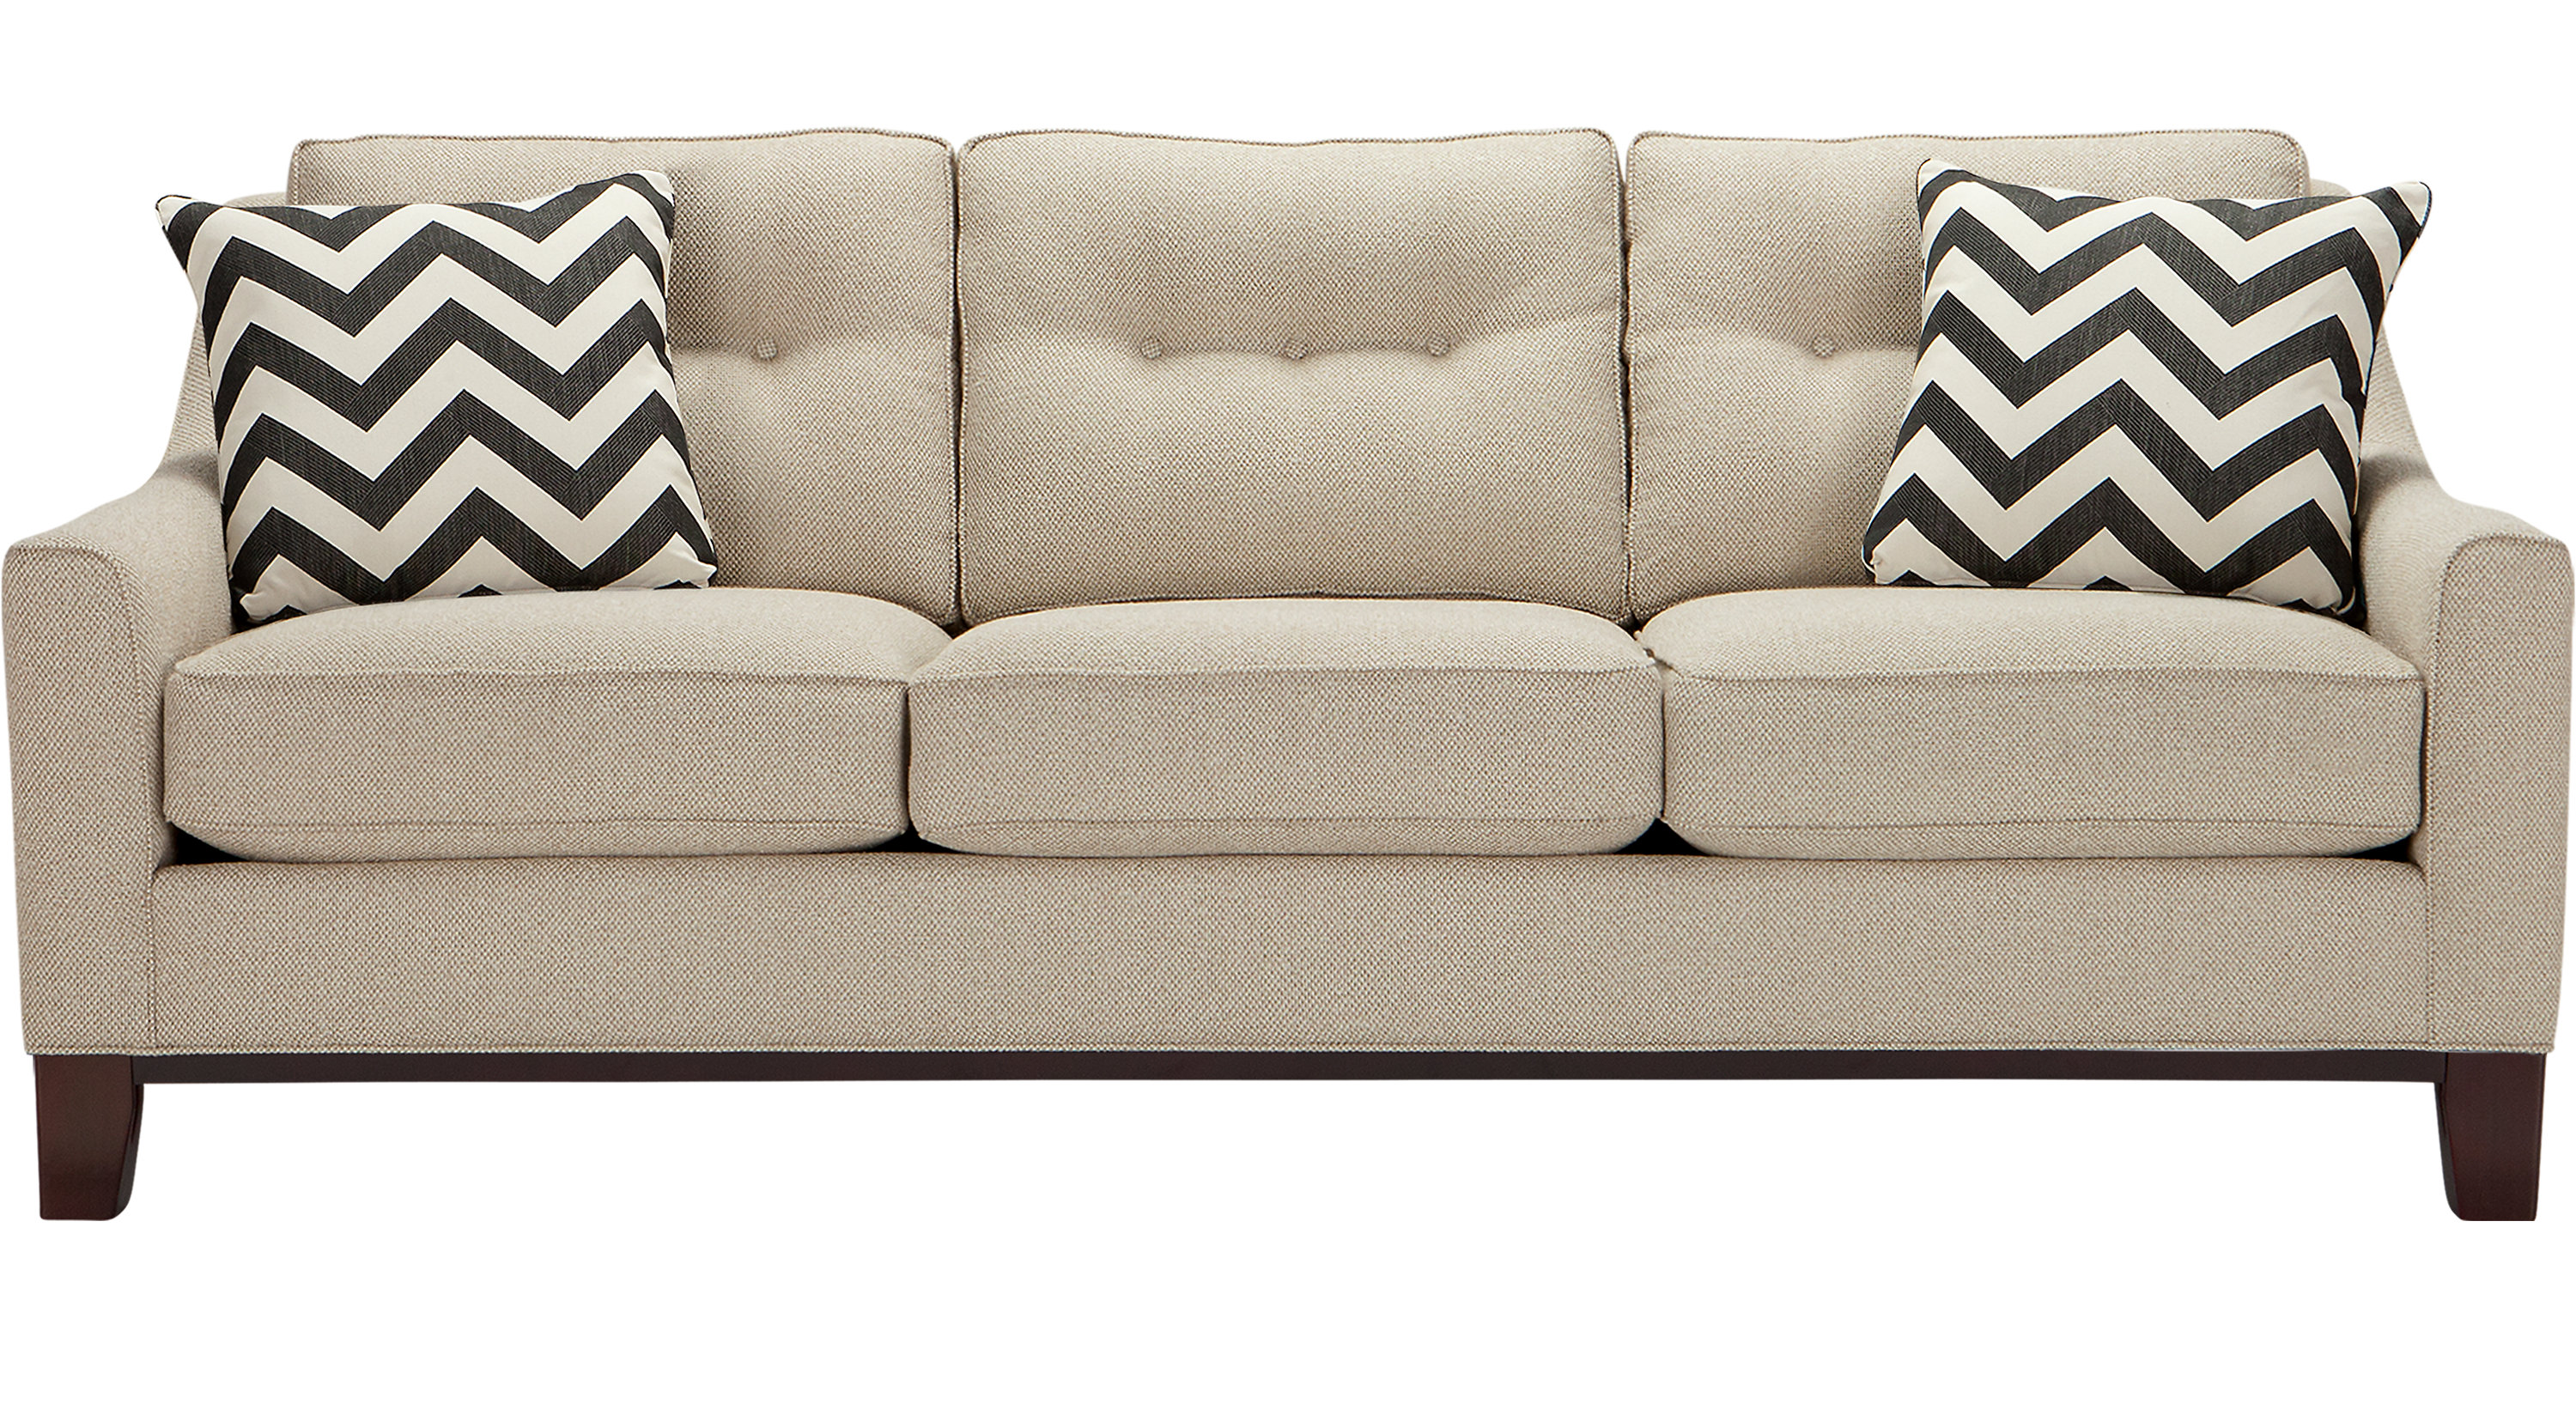 Couches and Sofas Under $500